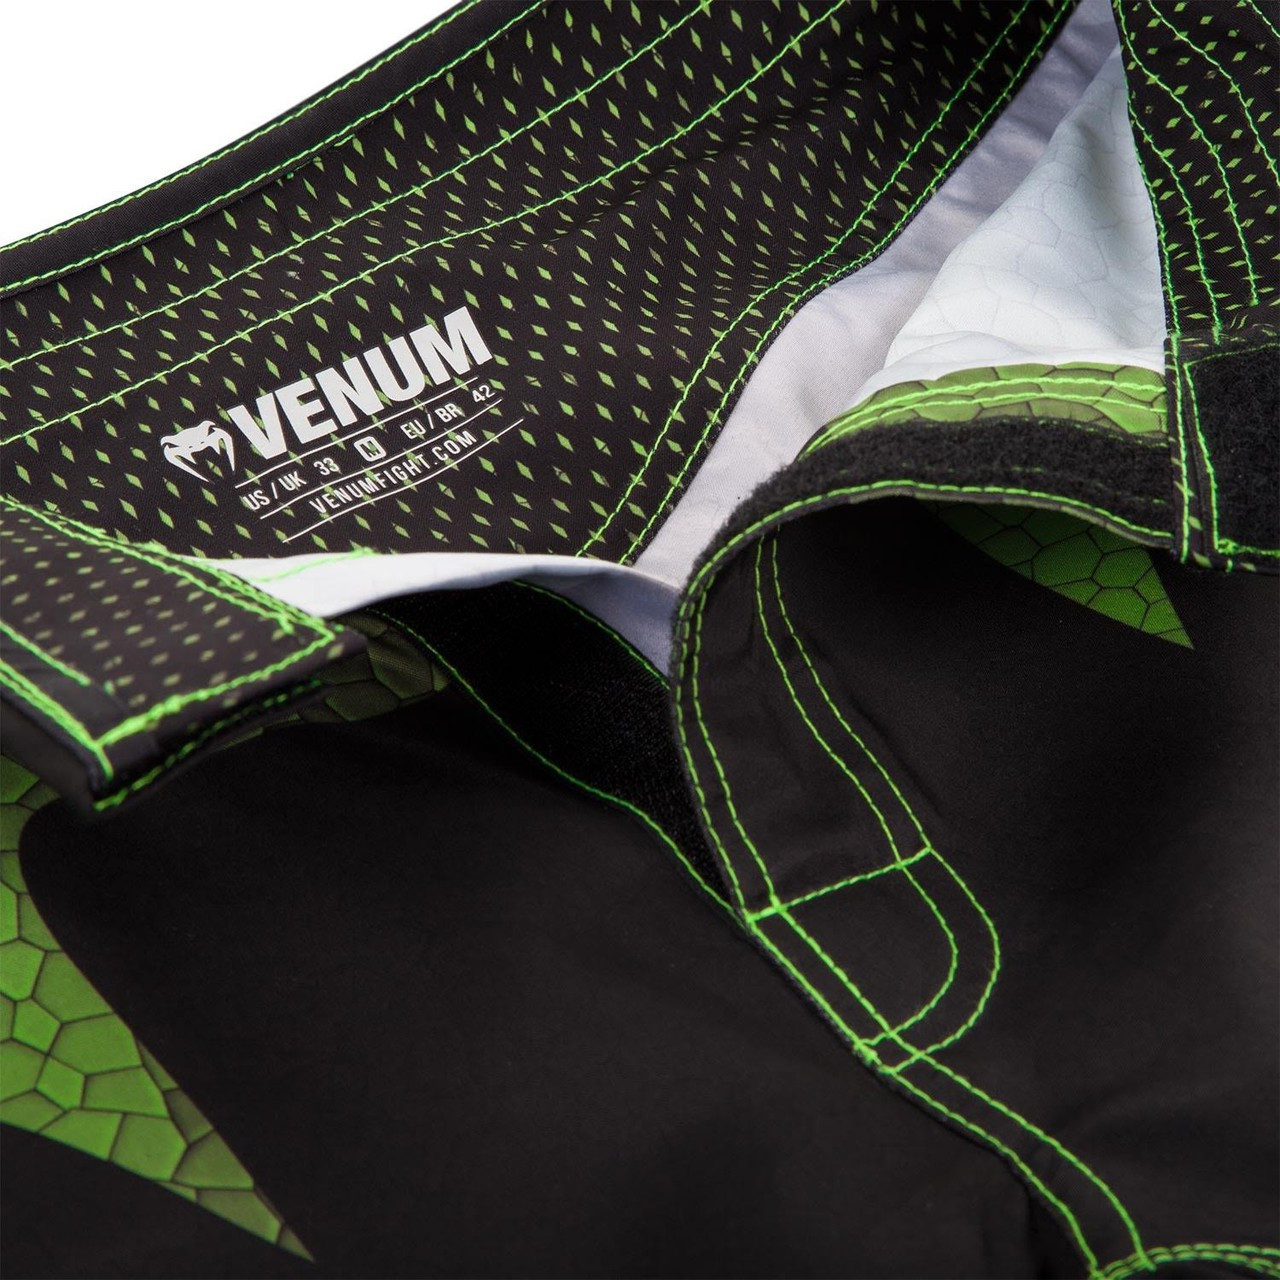 Closure system of the new Venum Hurricane Fightshorts Amazonia Green MMA Shorts now available at www.thejiujitsushop.com  Top MMA and Grappling Shorts  Enjoy Free Shipping from The Jiu Jitsu Shop today!